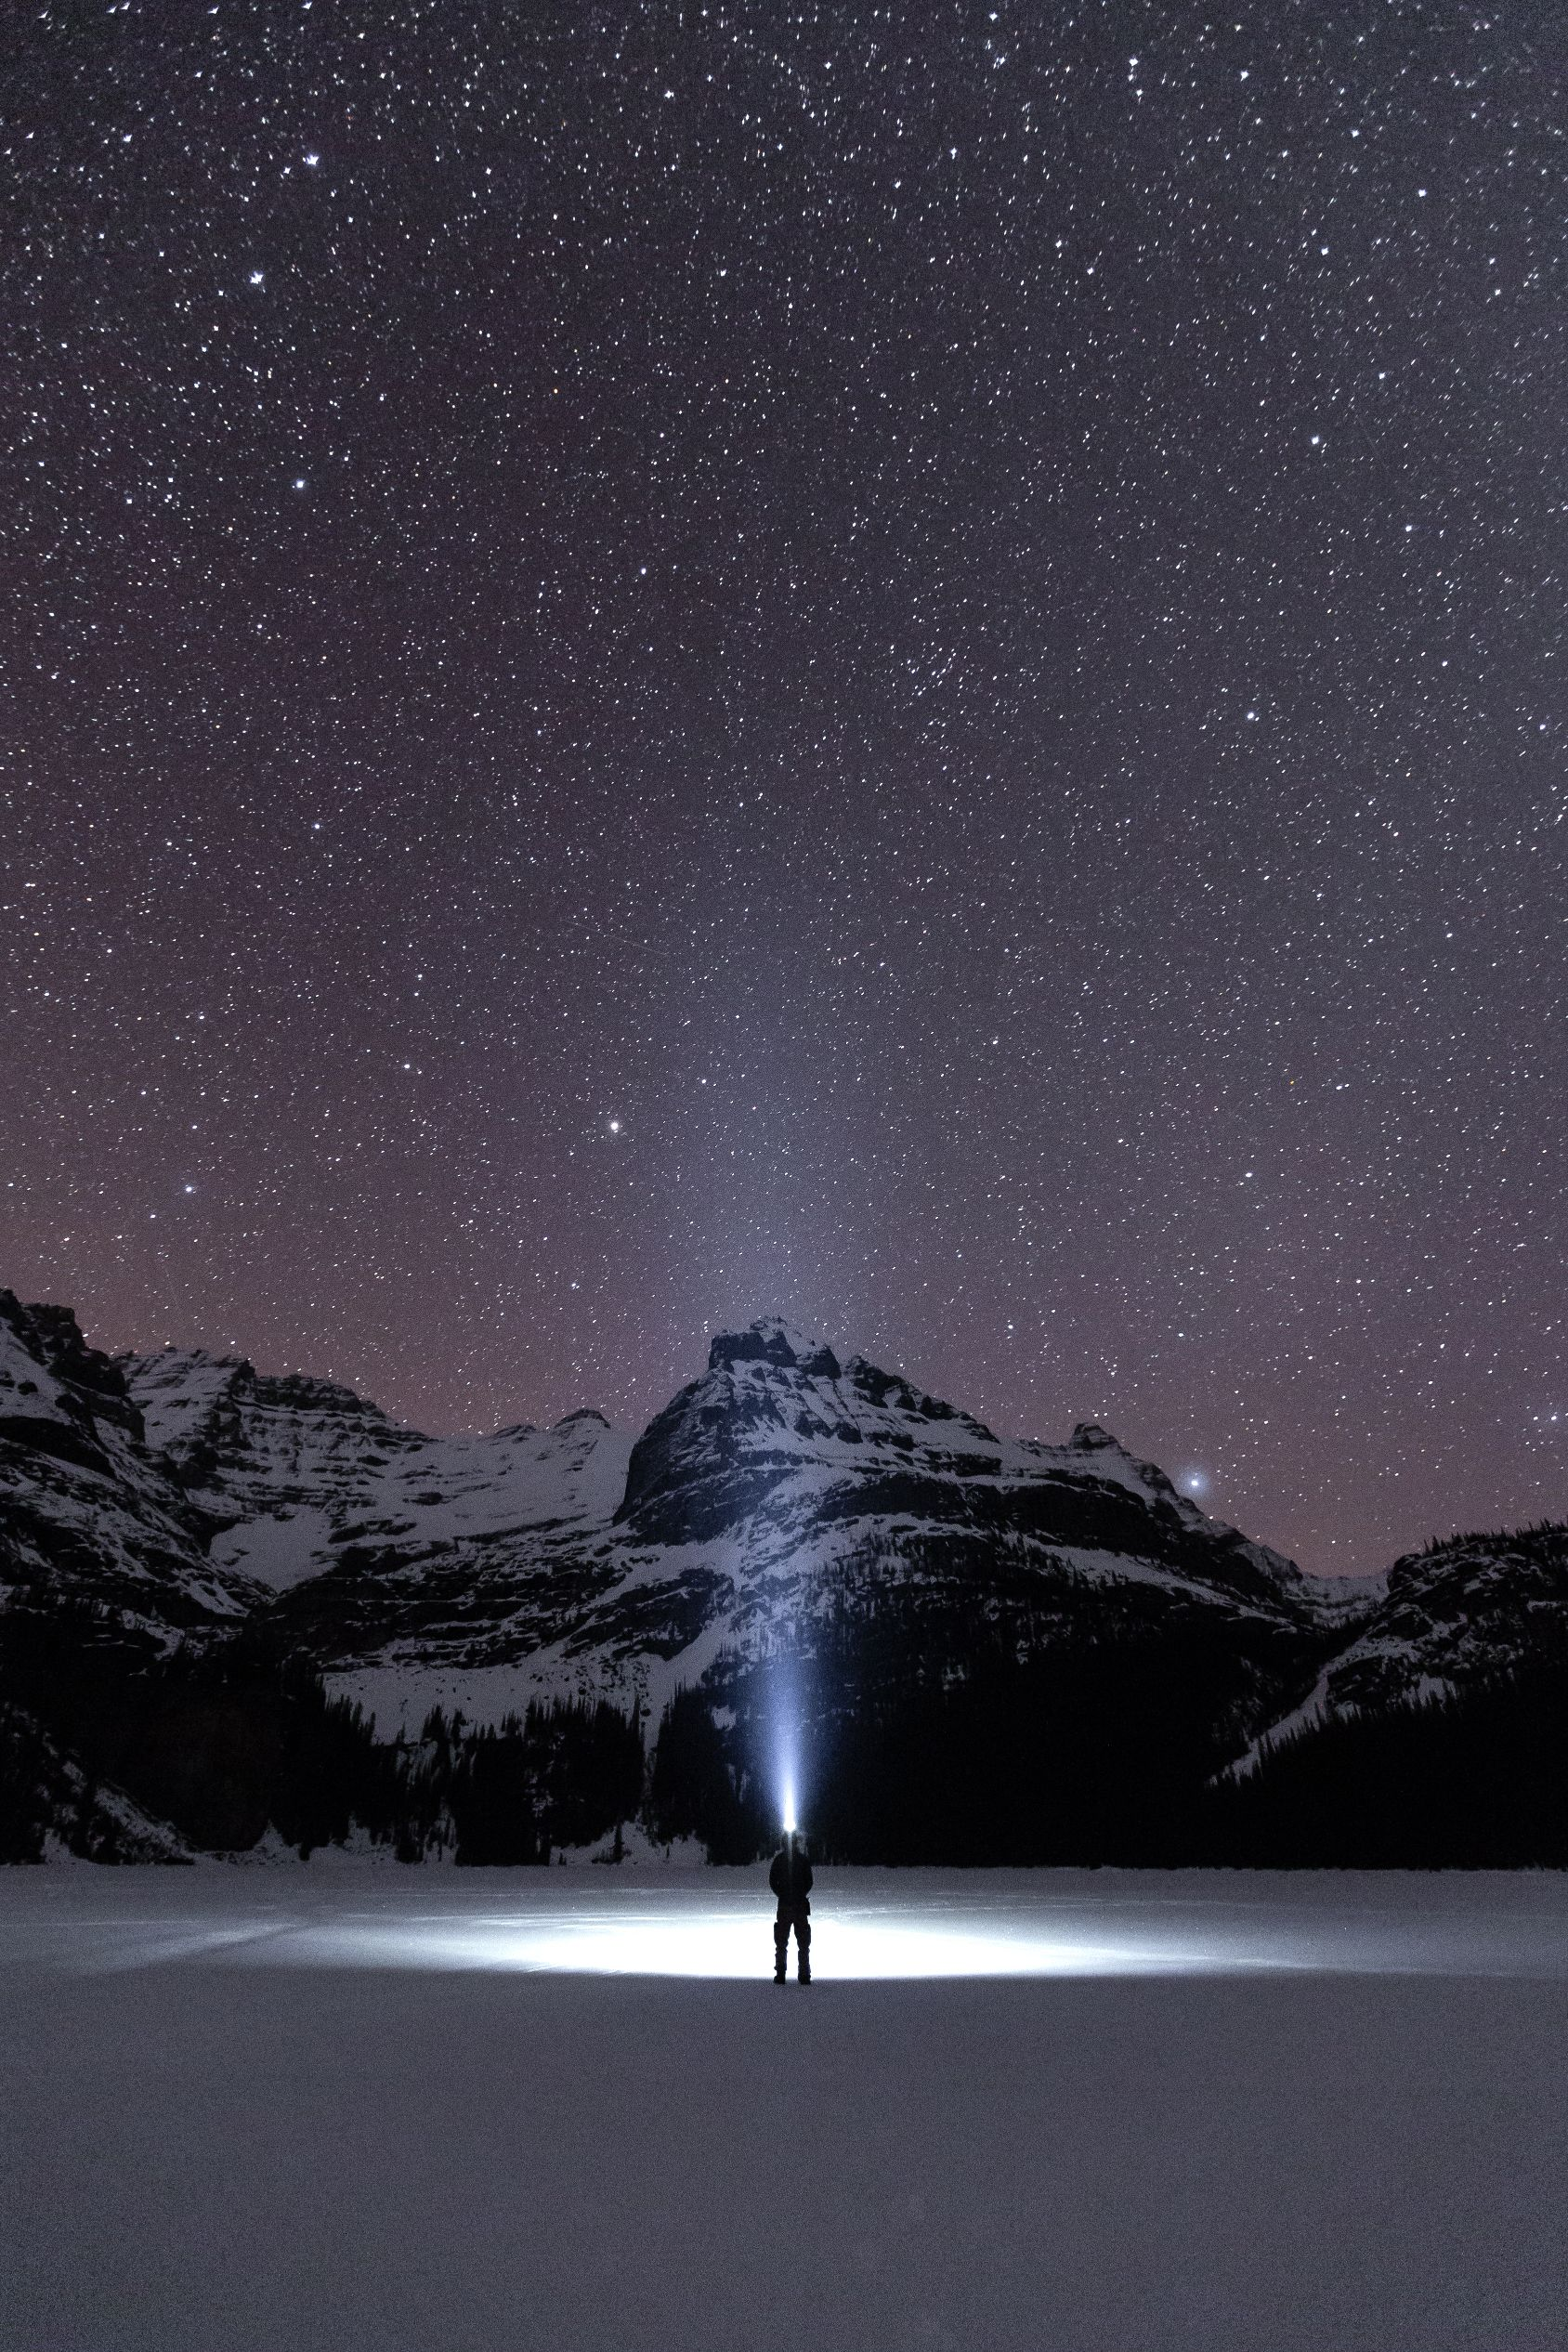 Man at night with head torch looking up at stars.